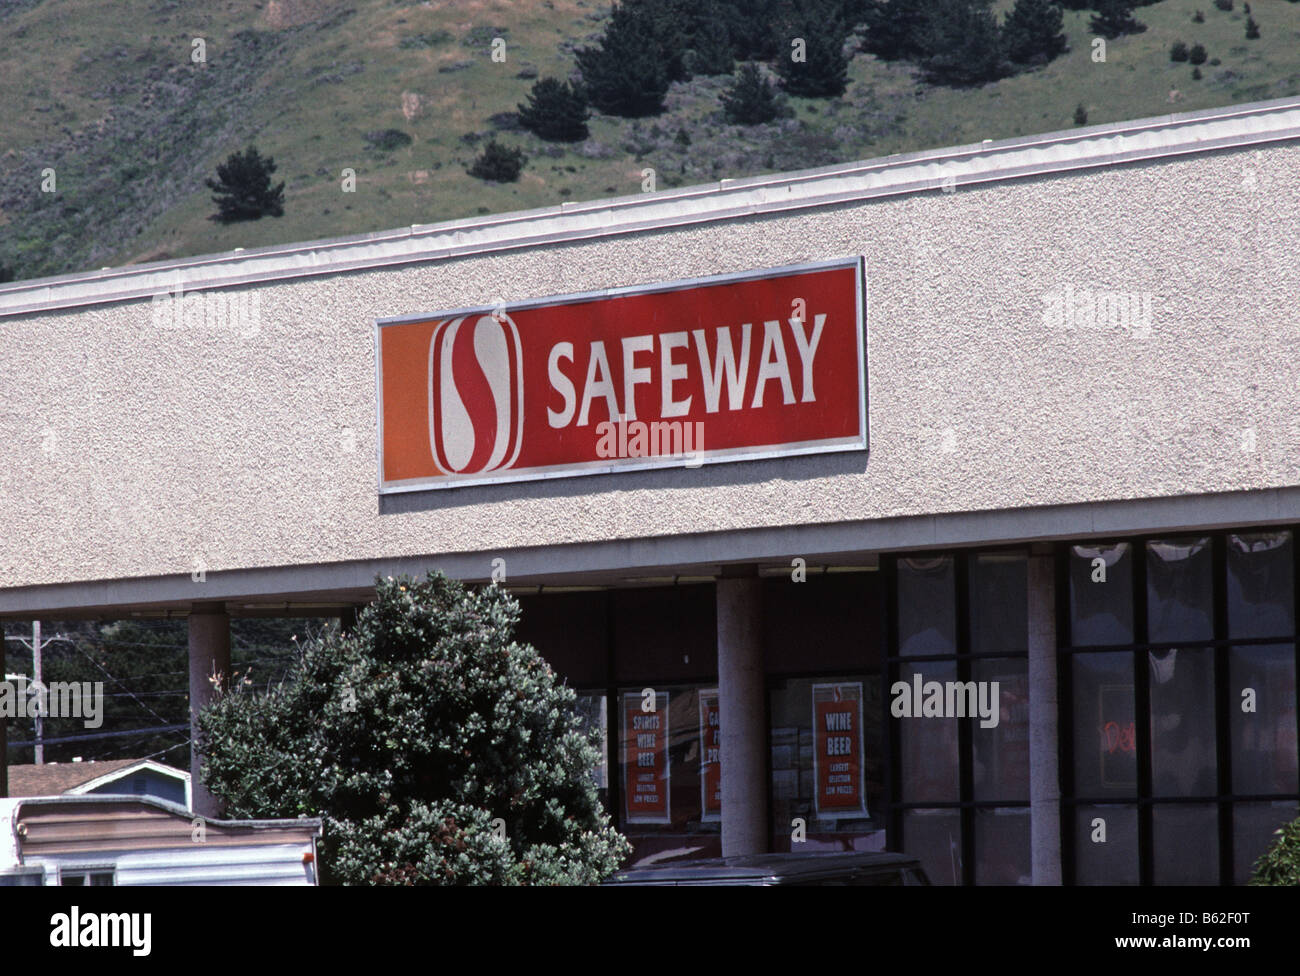 Safeway supermarket in northern california stock photo royalty safeway supermarket in northern california buycottarizona